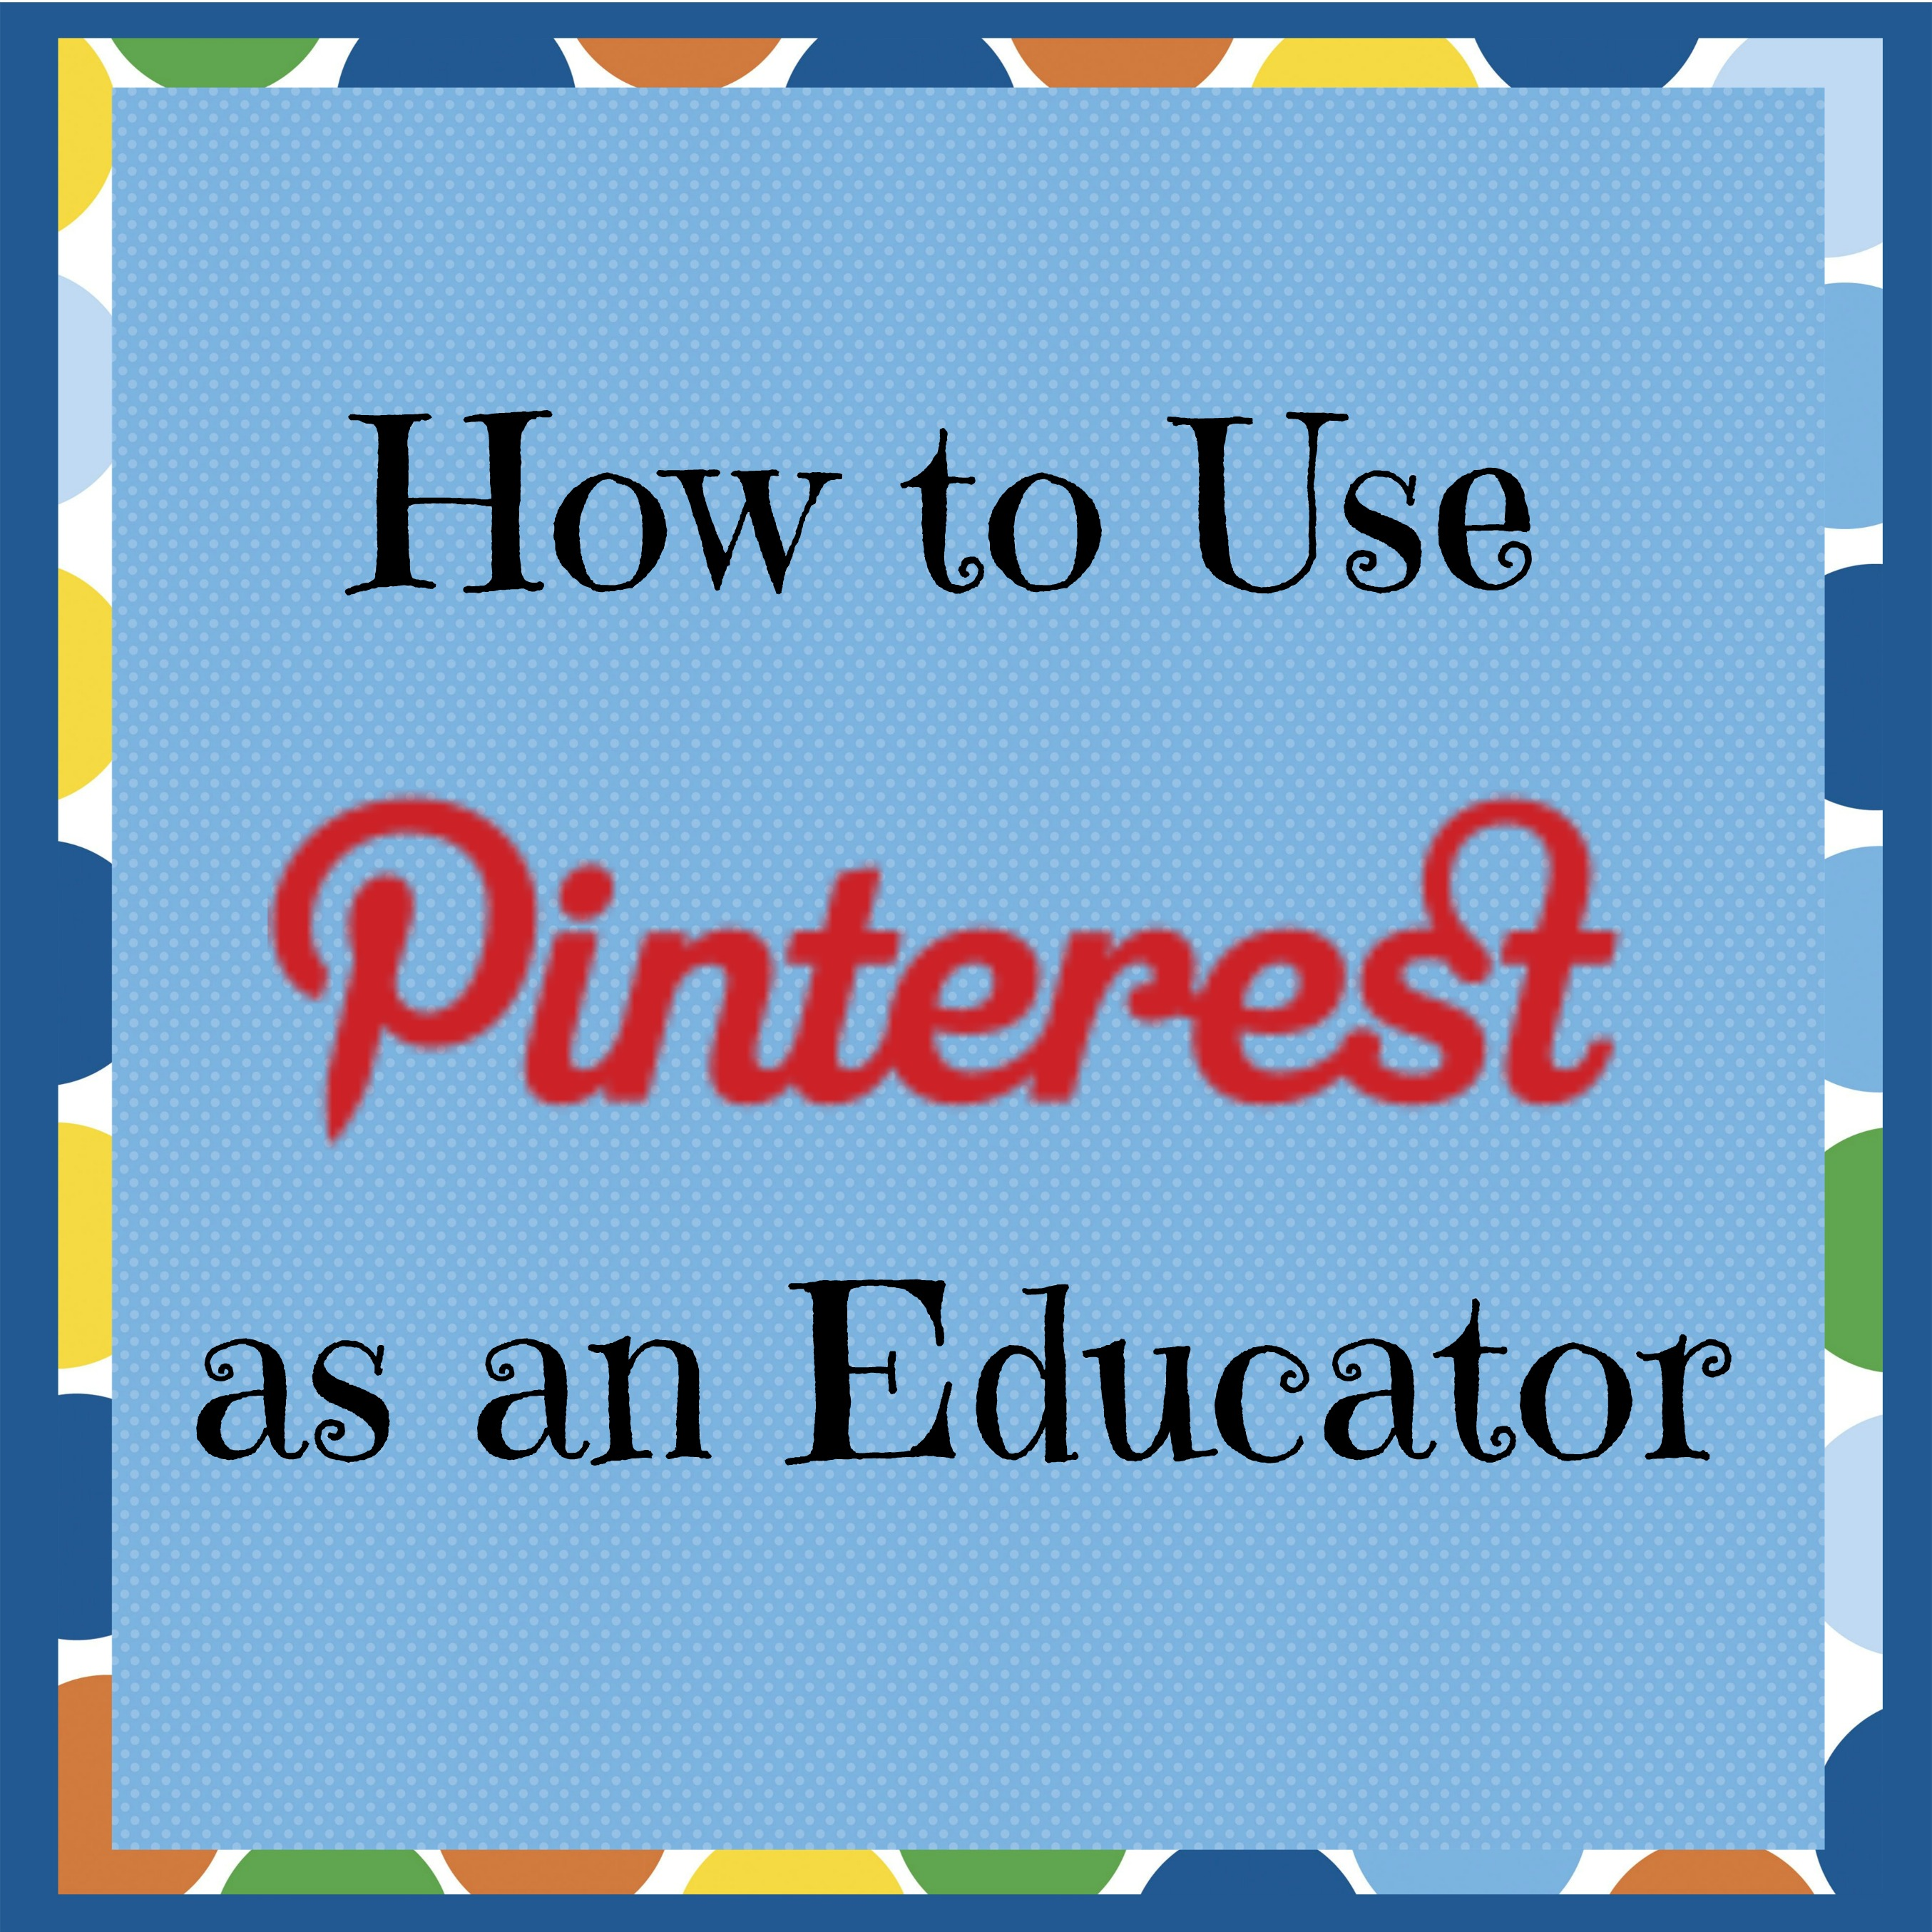 How to Use Pinterest as an Educator